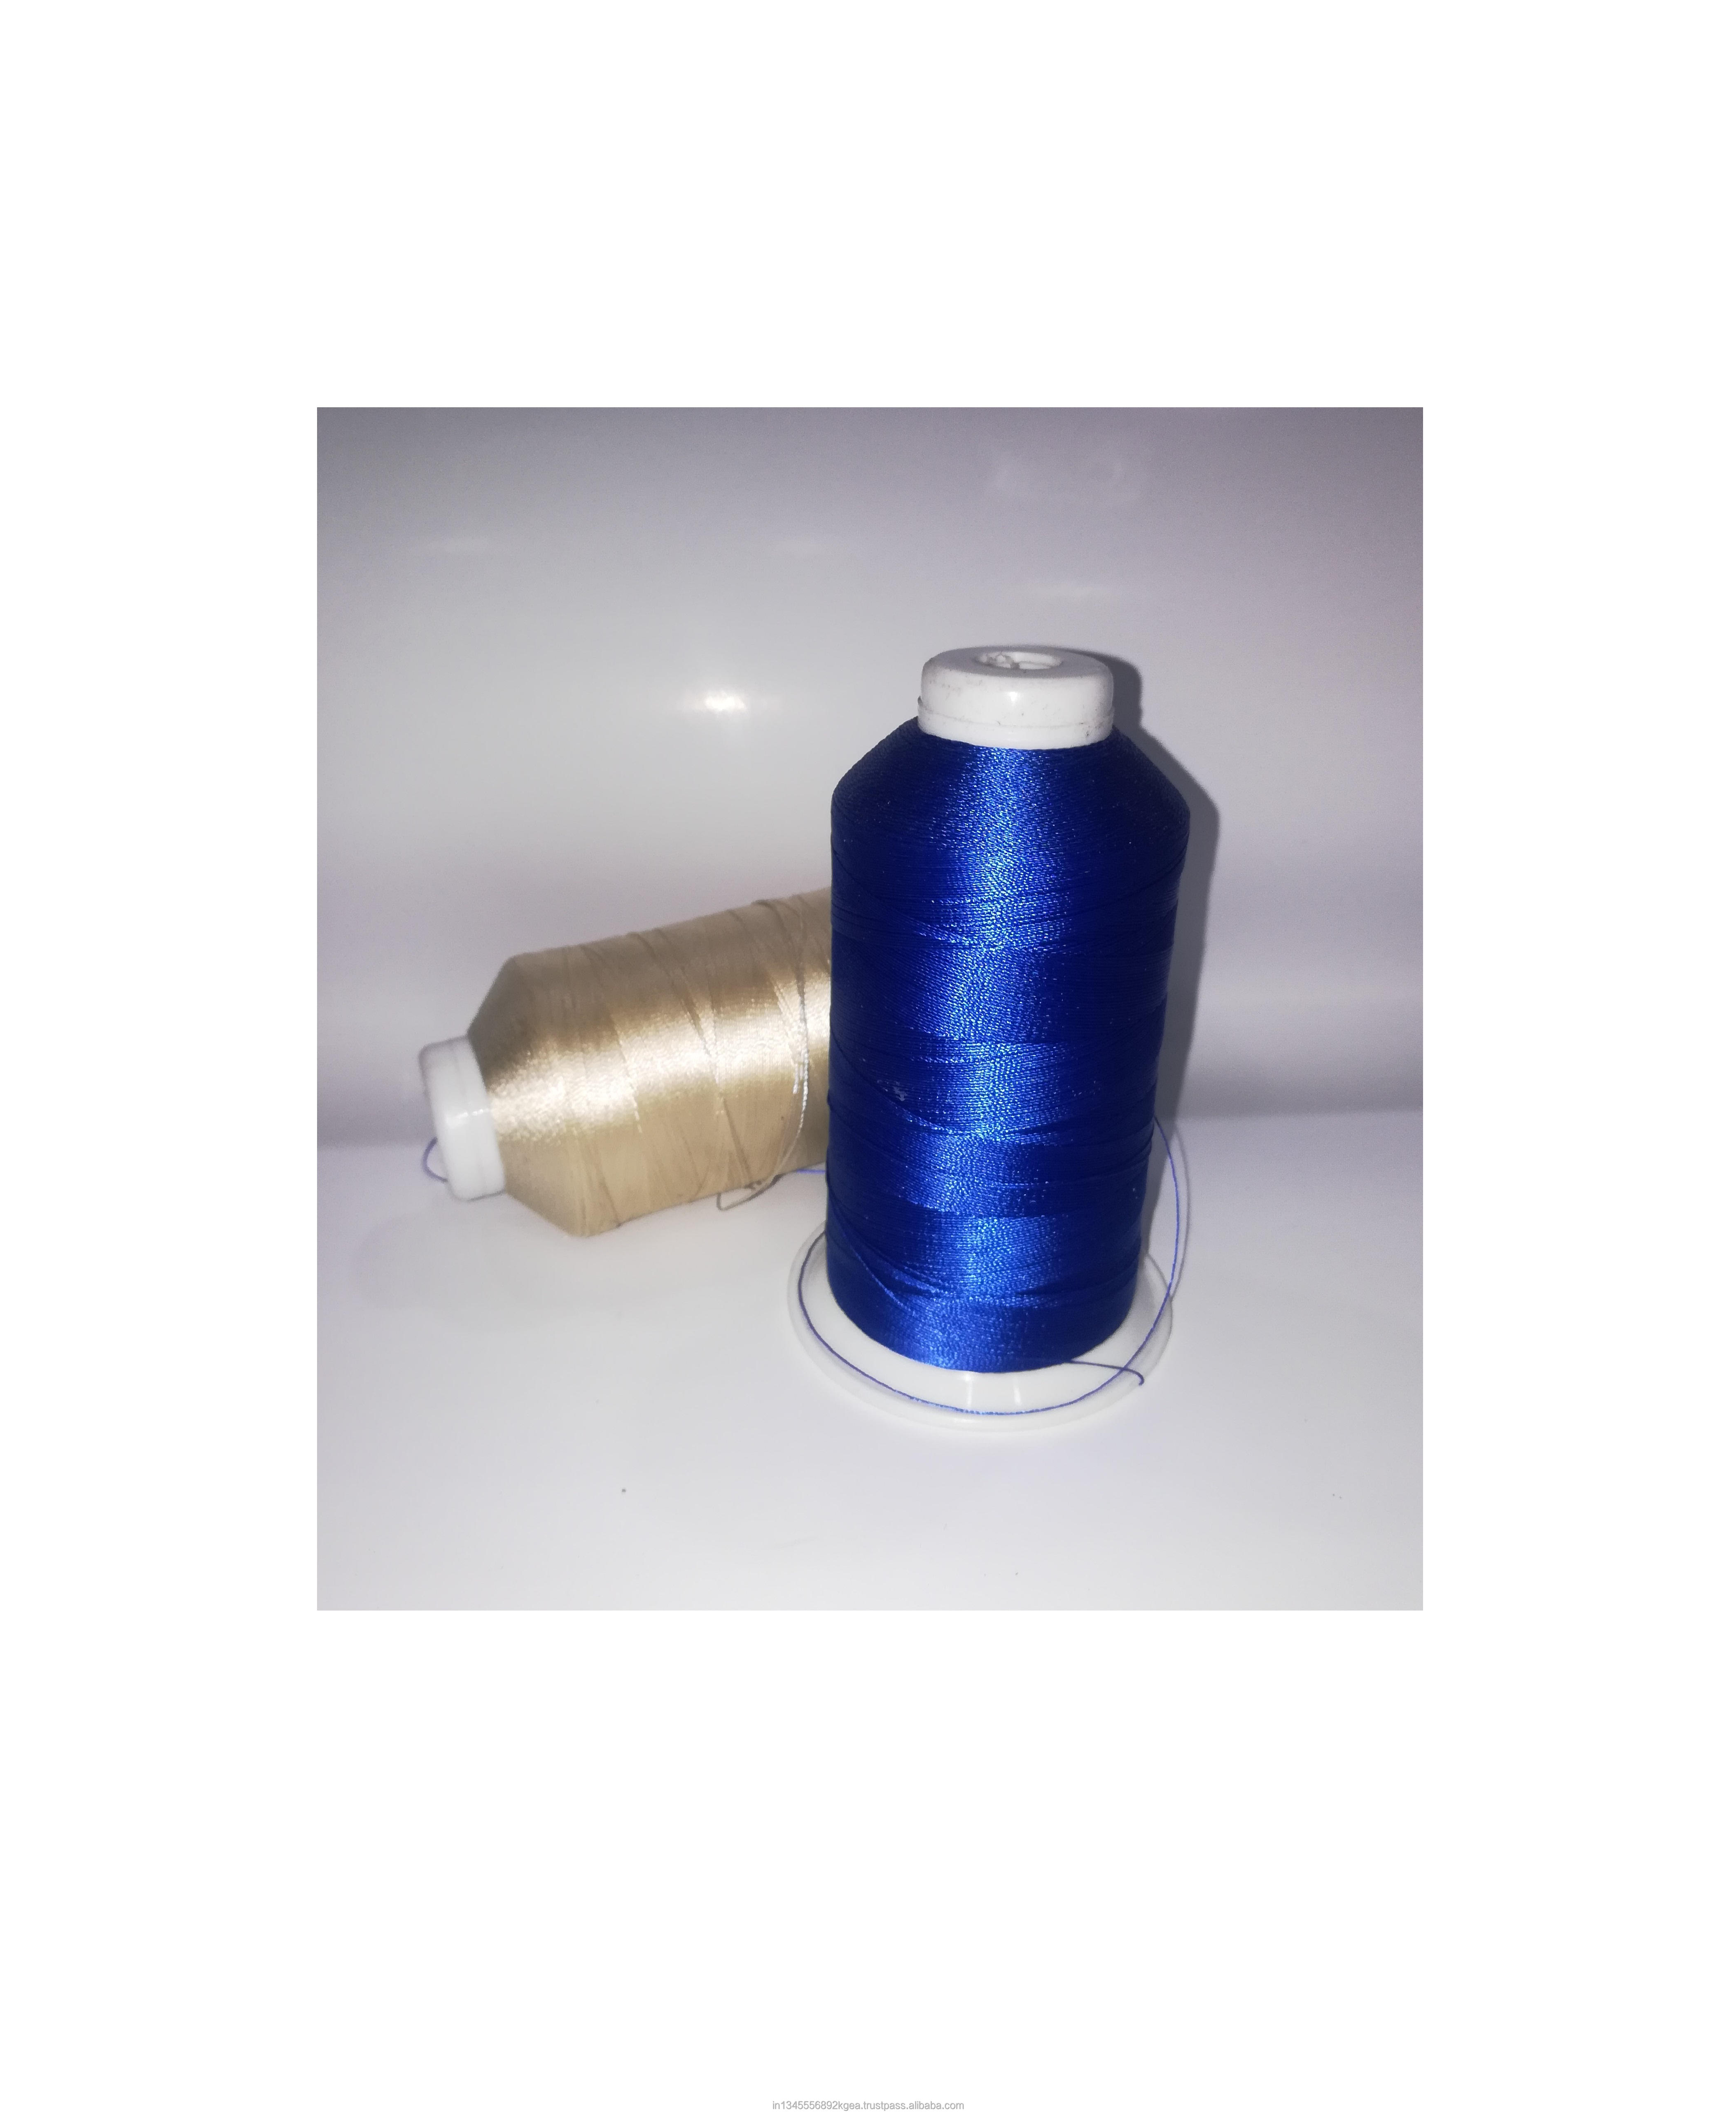 sell dyed polyester high tenacity thread 150d to 300d bright trilobal